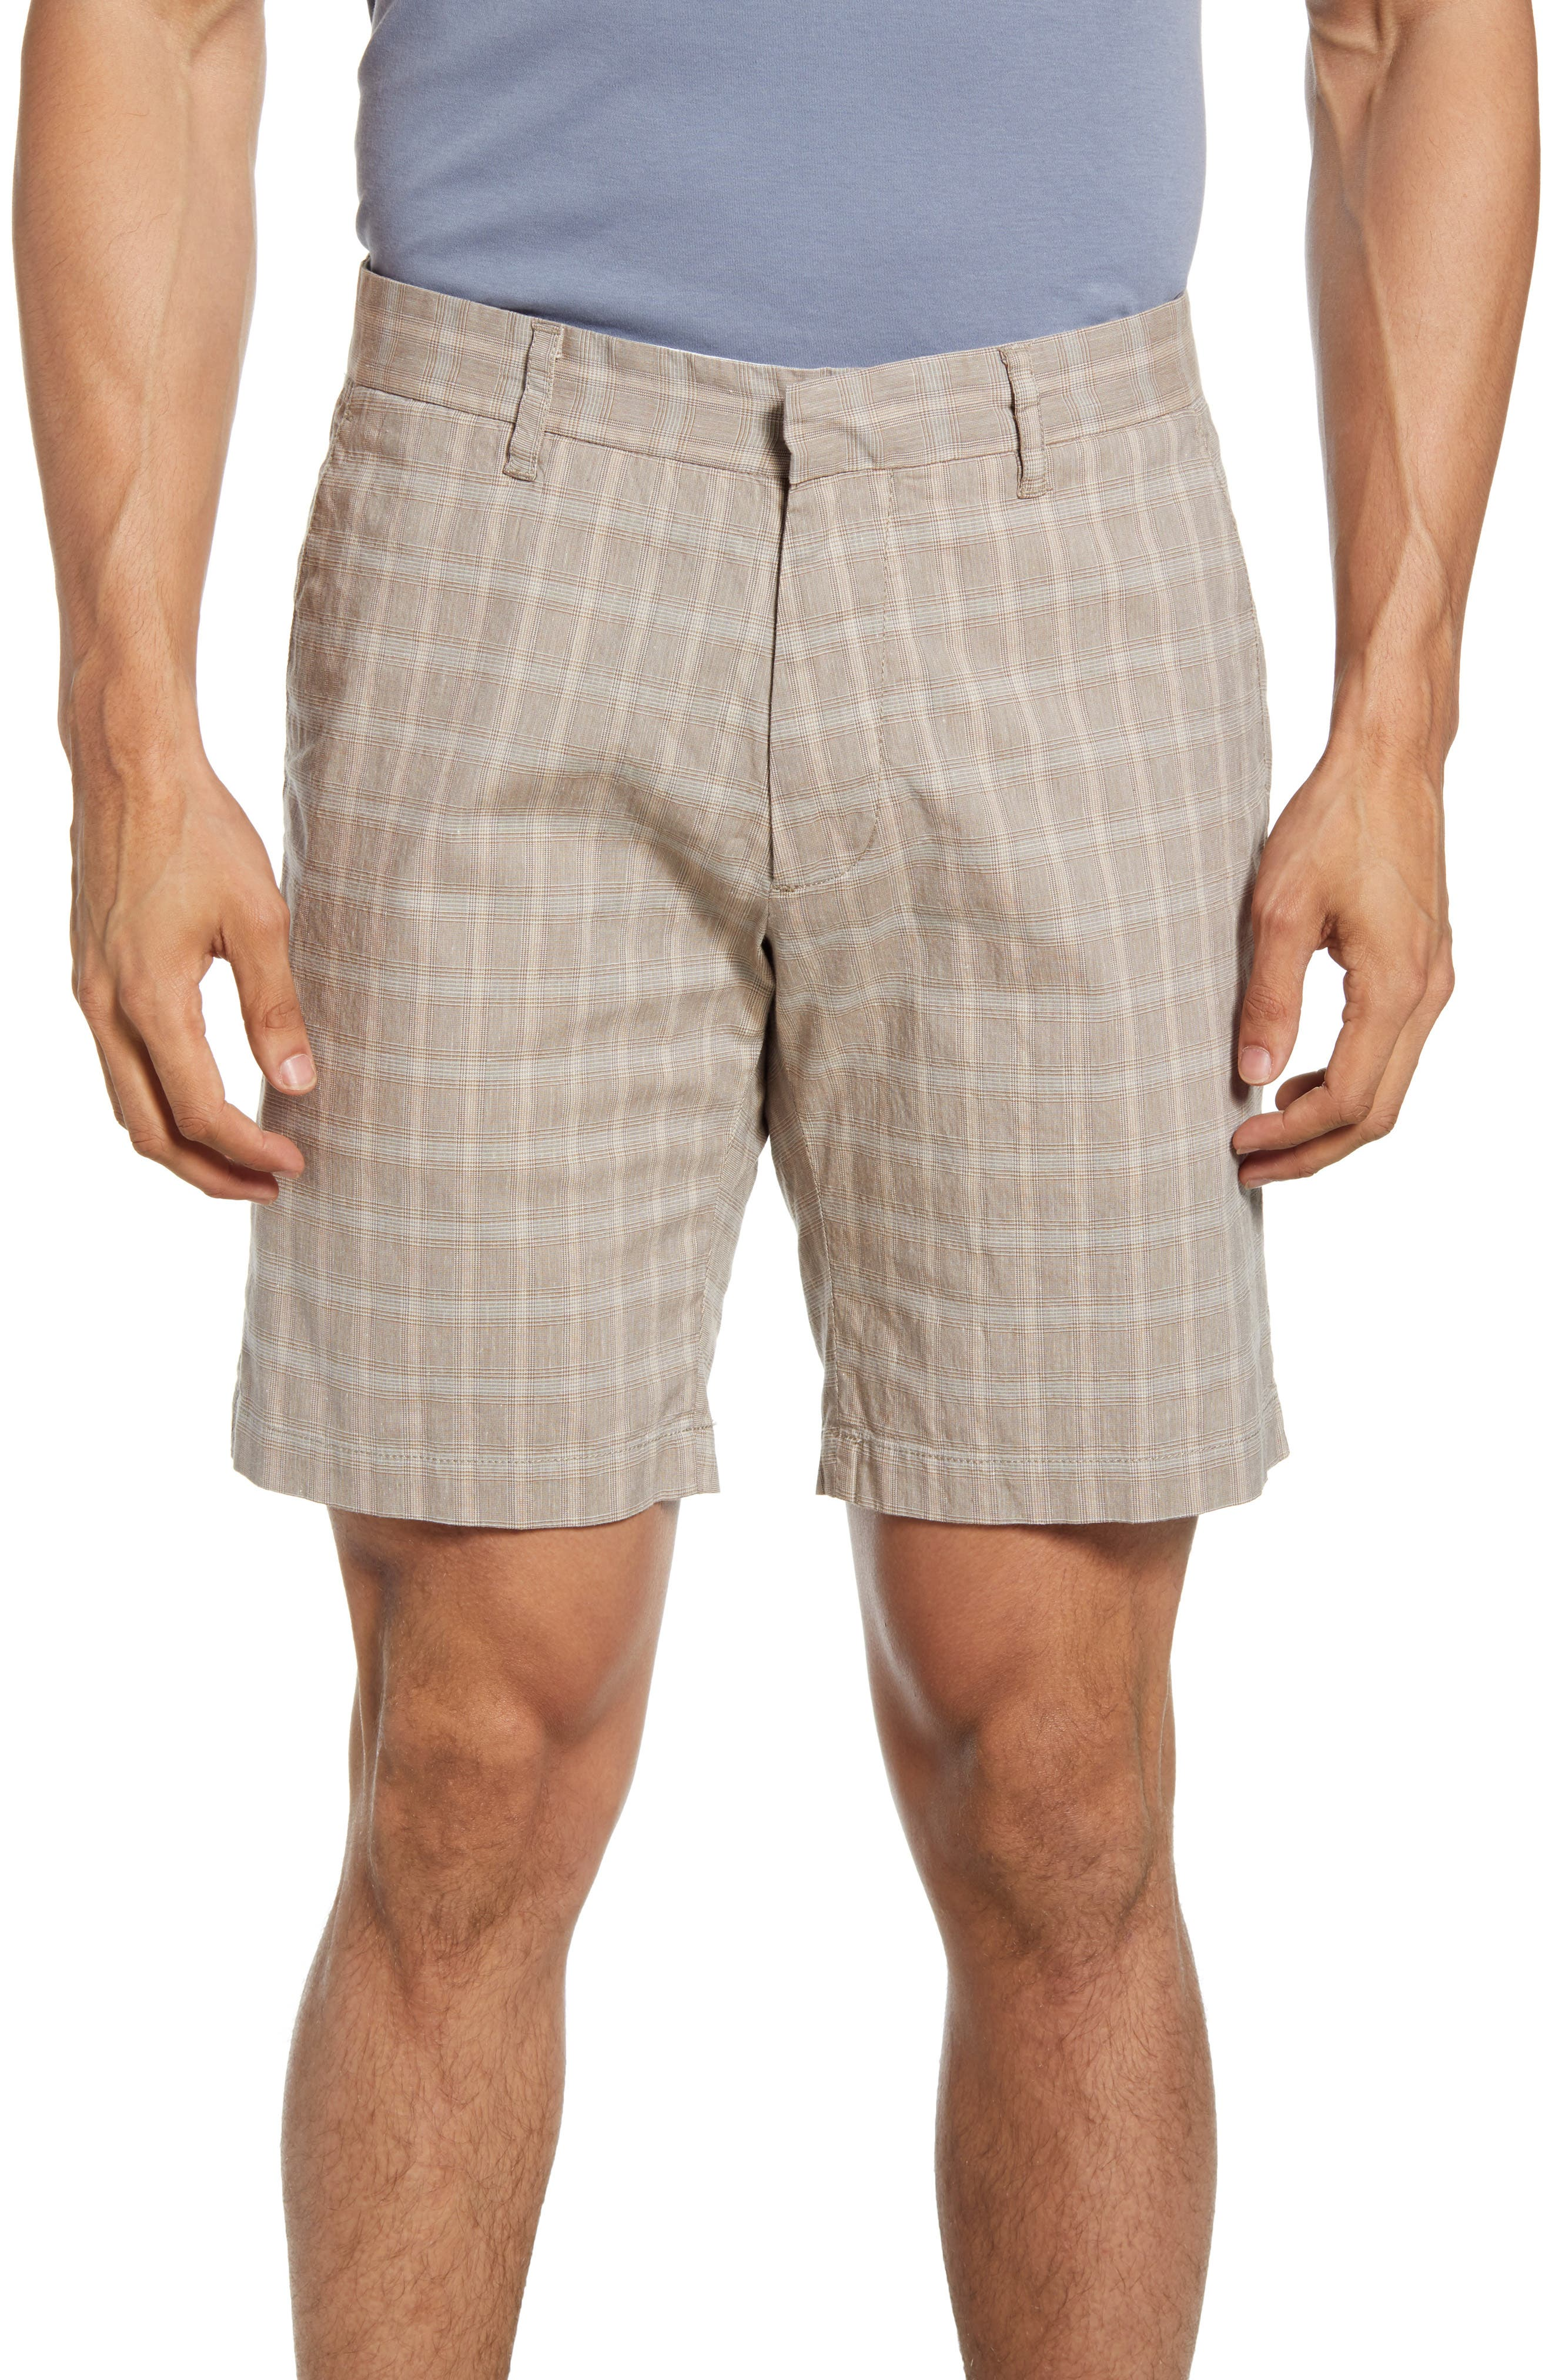 Image of Zachary Prell Plaid Tailored Fit Shorts